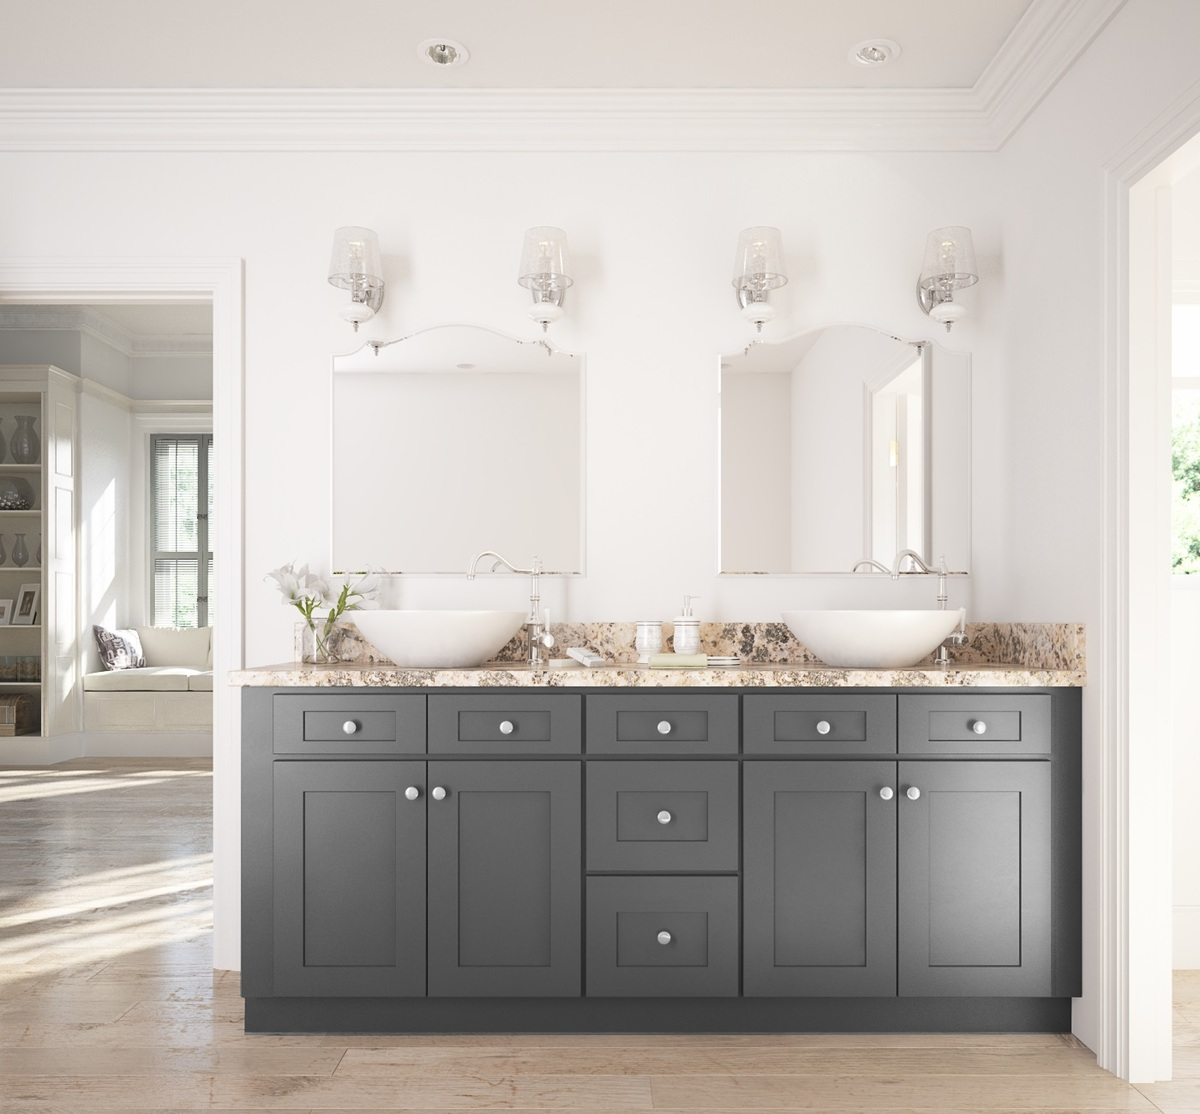 Best Grays For Bathroom Cabinets